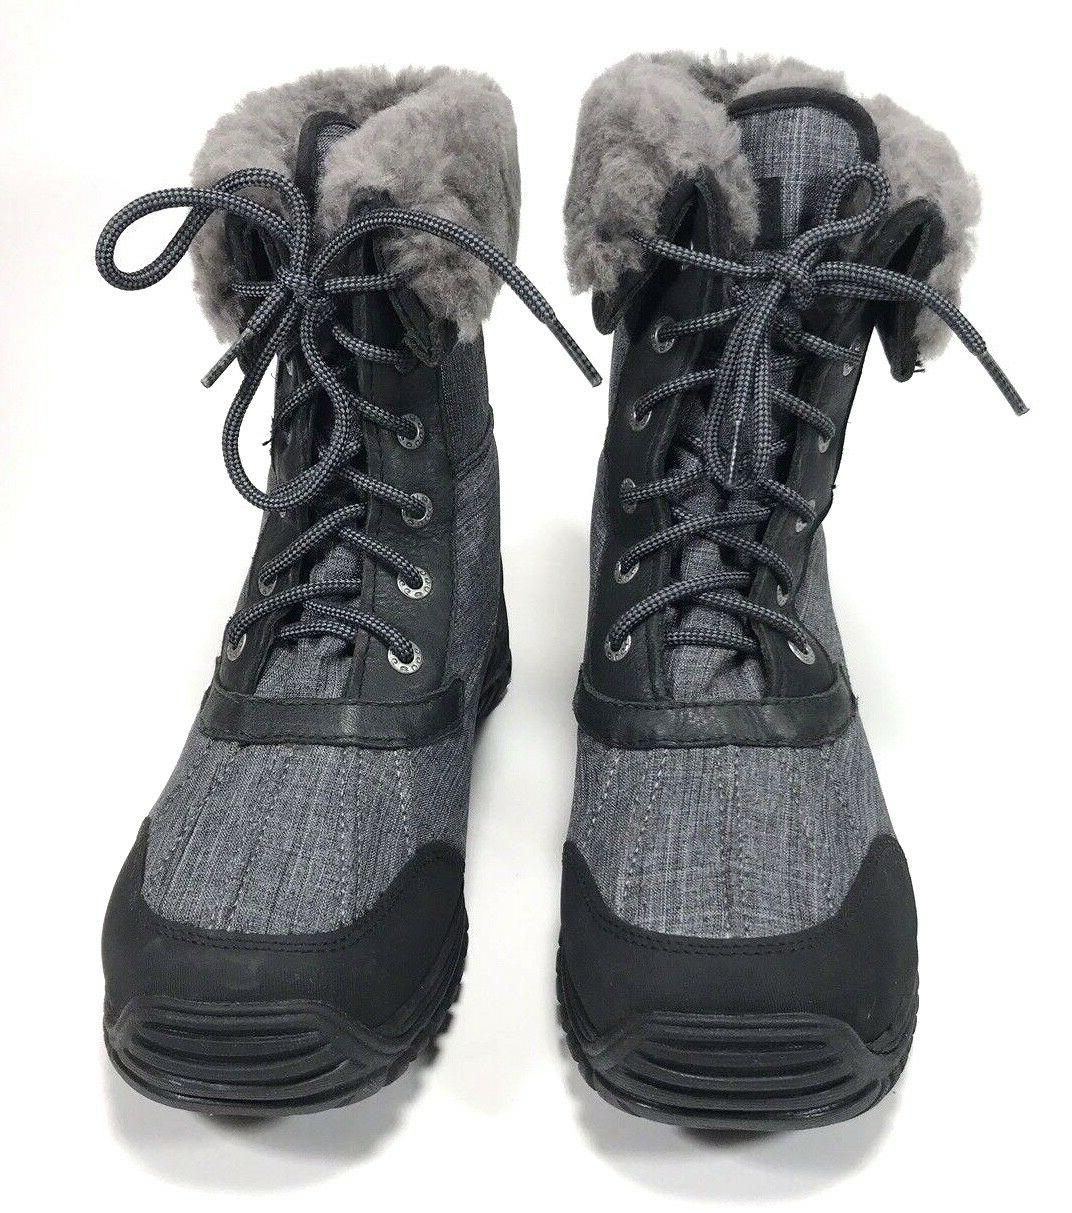 Ugg Boot UGGpure Lined Waterproof Lace Up Winter